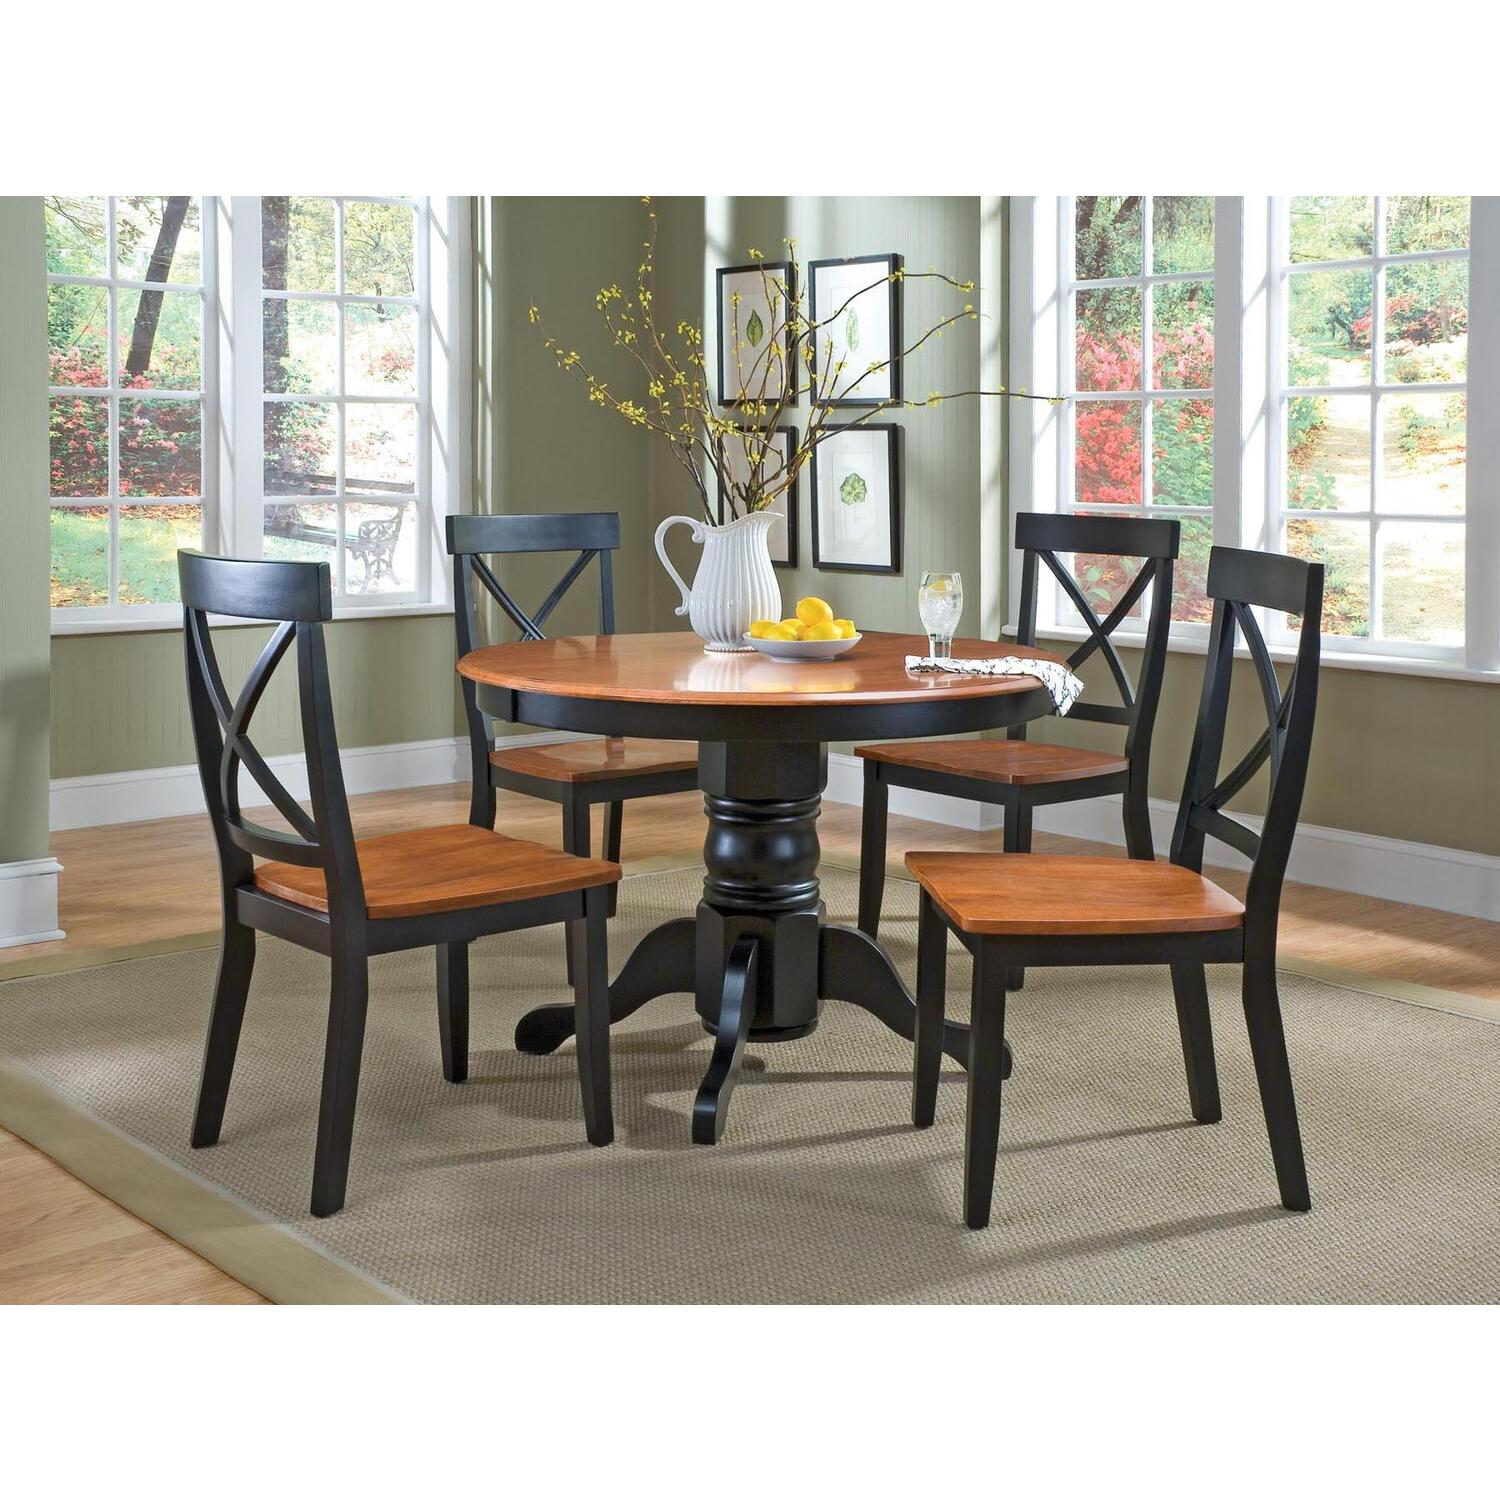 Furniture home goods appliances athletic gear fitness for Round dining room table sets